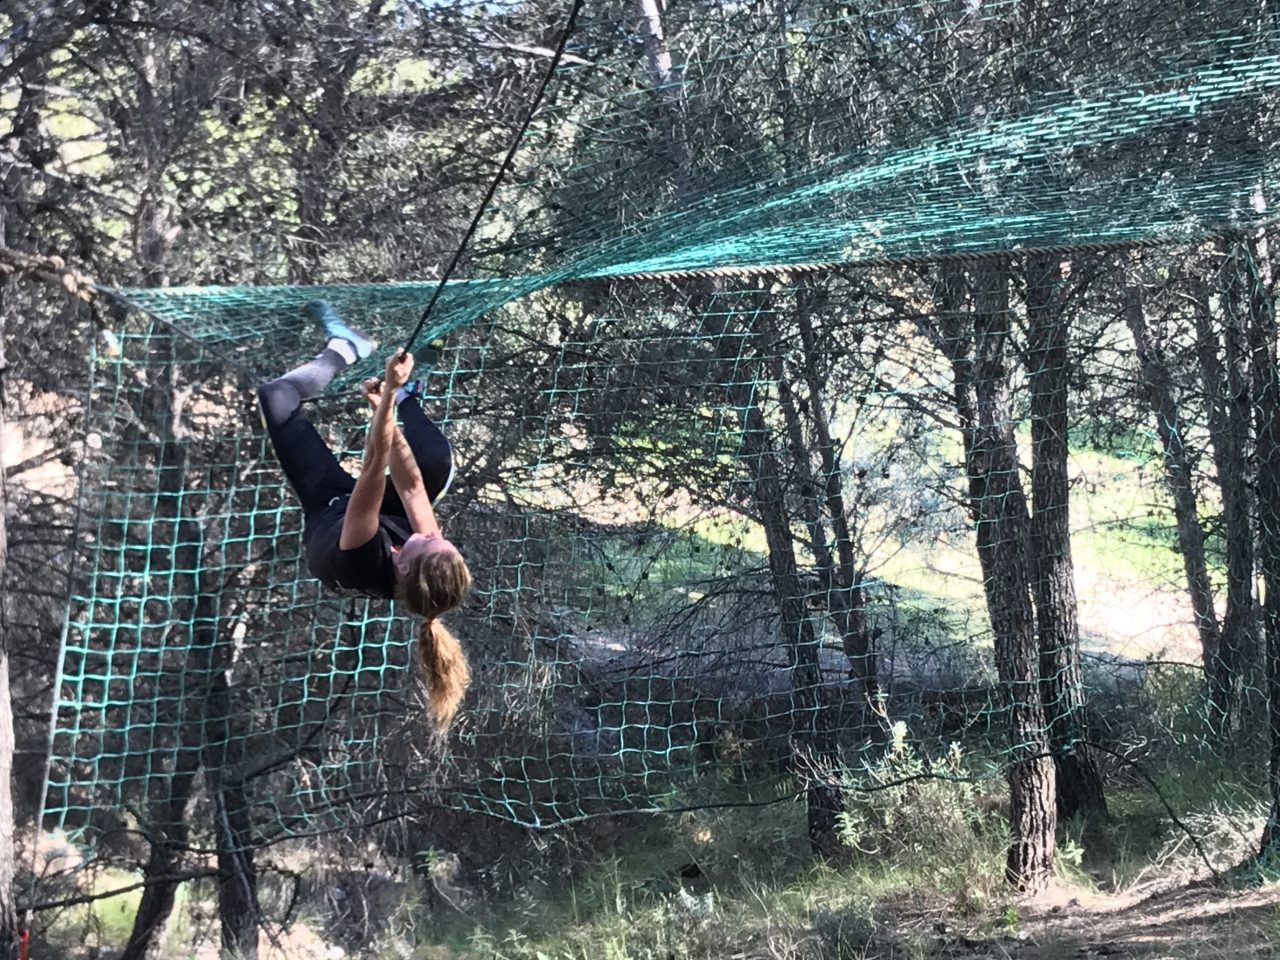 survivalrun in Spanje